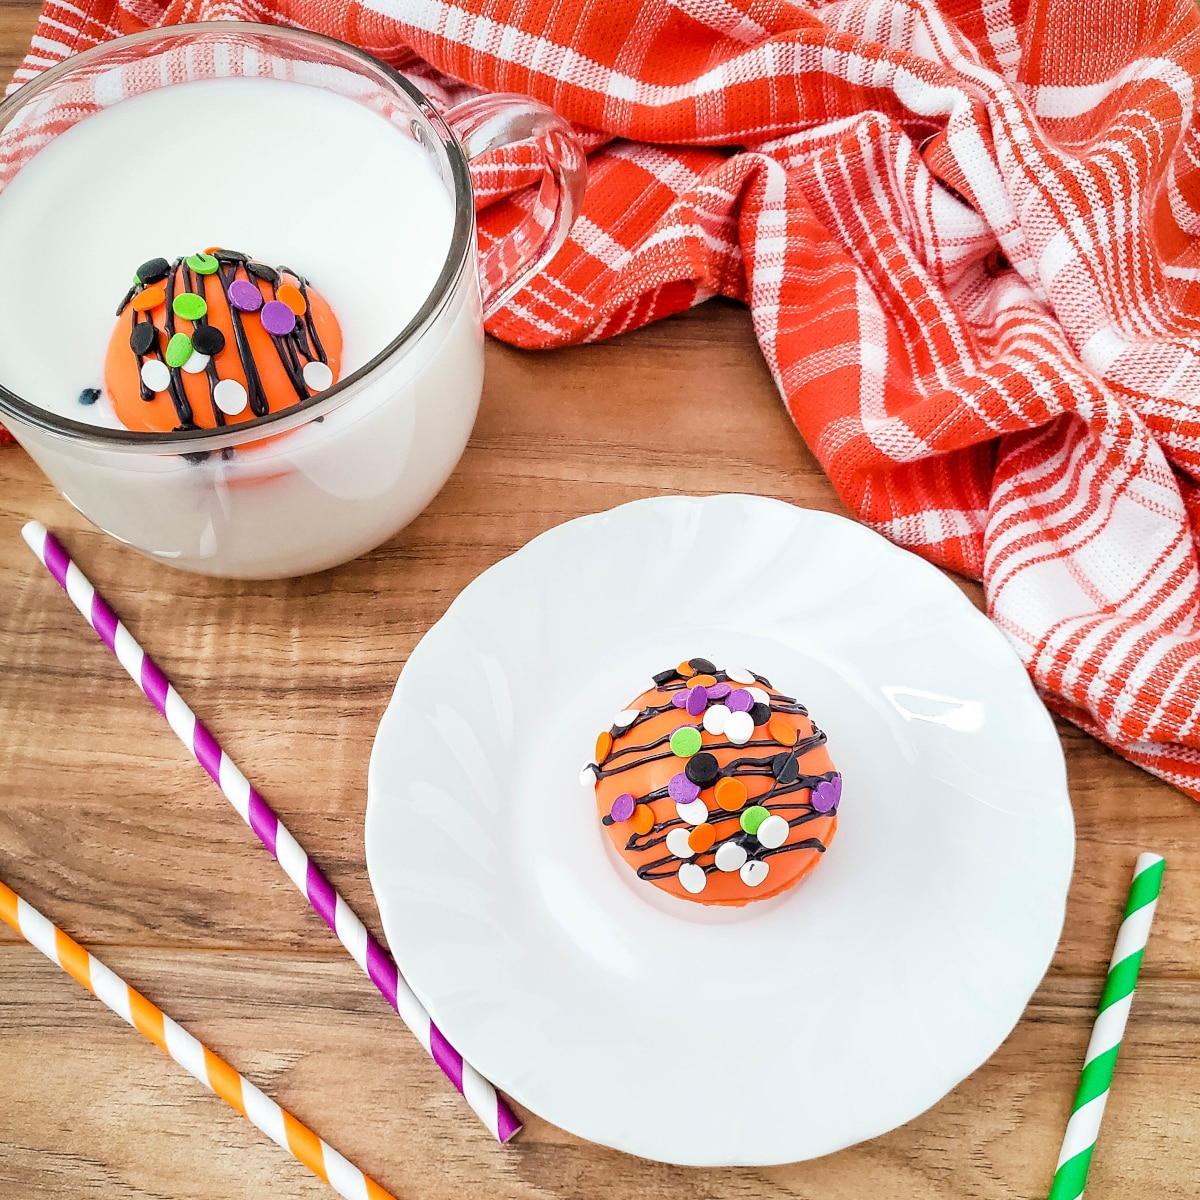 top down view or orange and black decorated cocoa bombs for Halloween. One bomb is on a plate and the other is in a mug of warm milk.